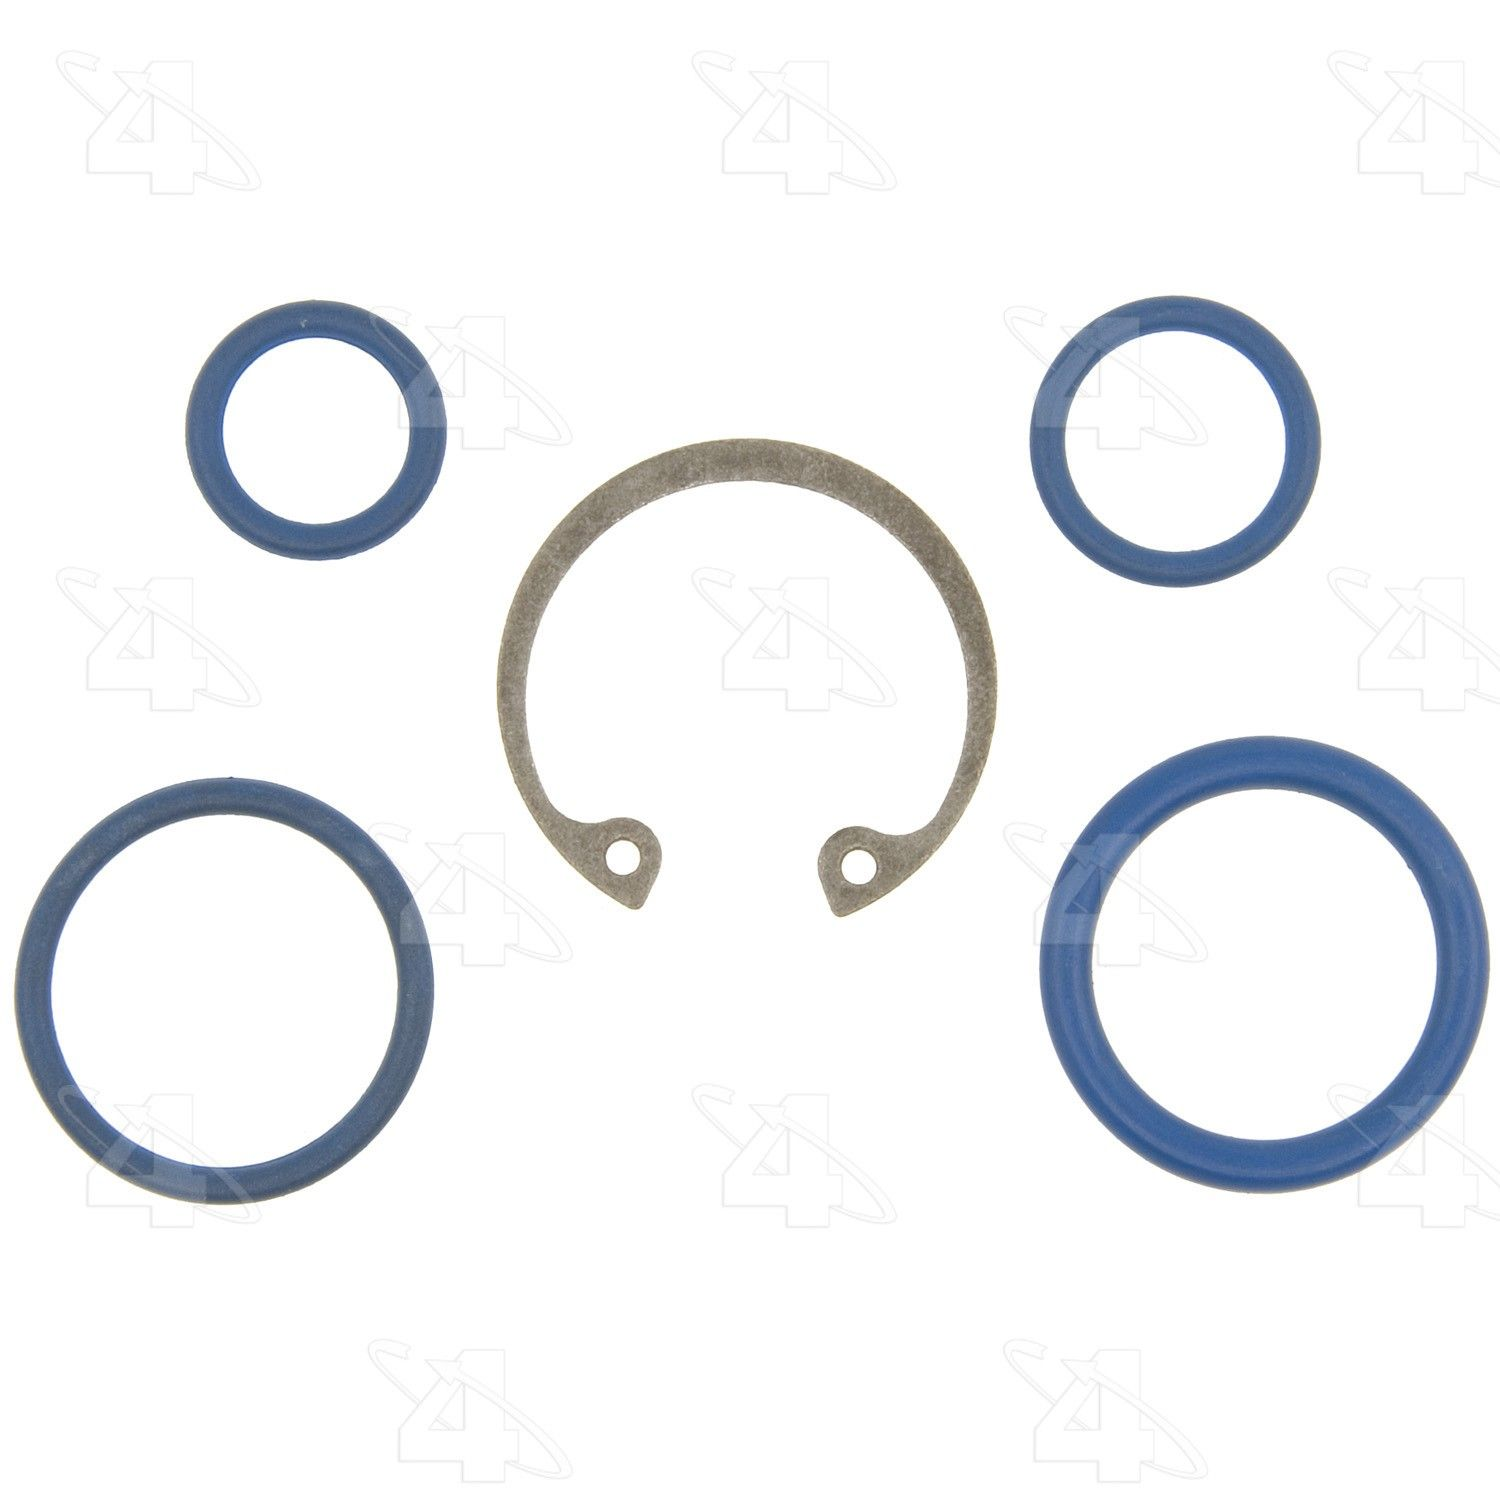 A//C System O-Ring and Gasket Kit-Compressor Gasket Kit 4 Seasons 24008